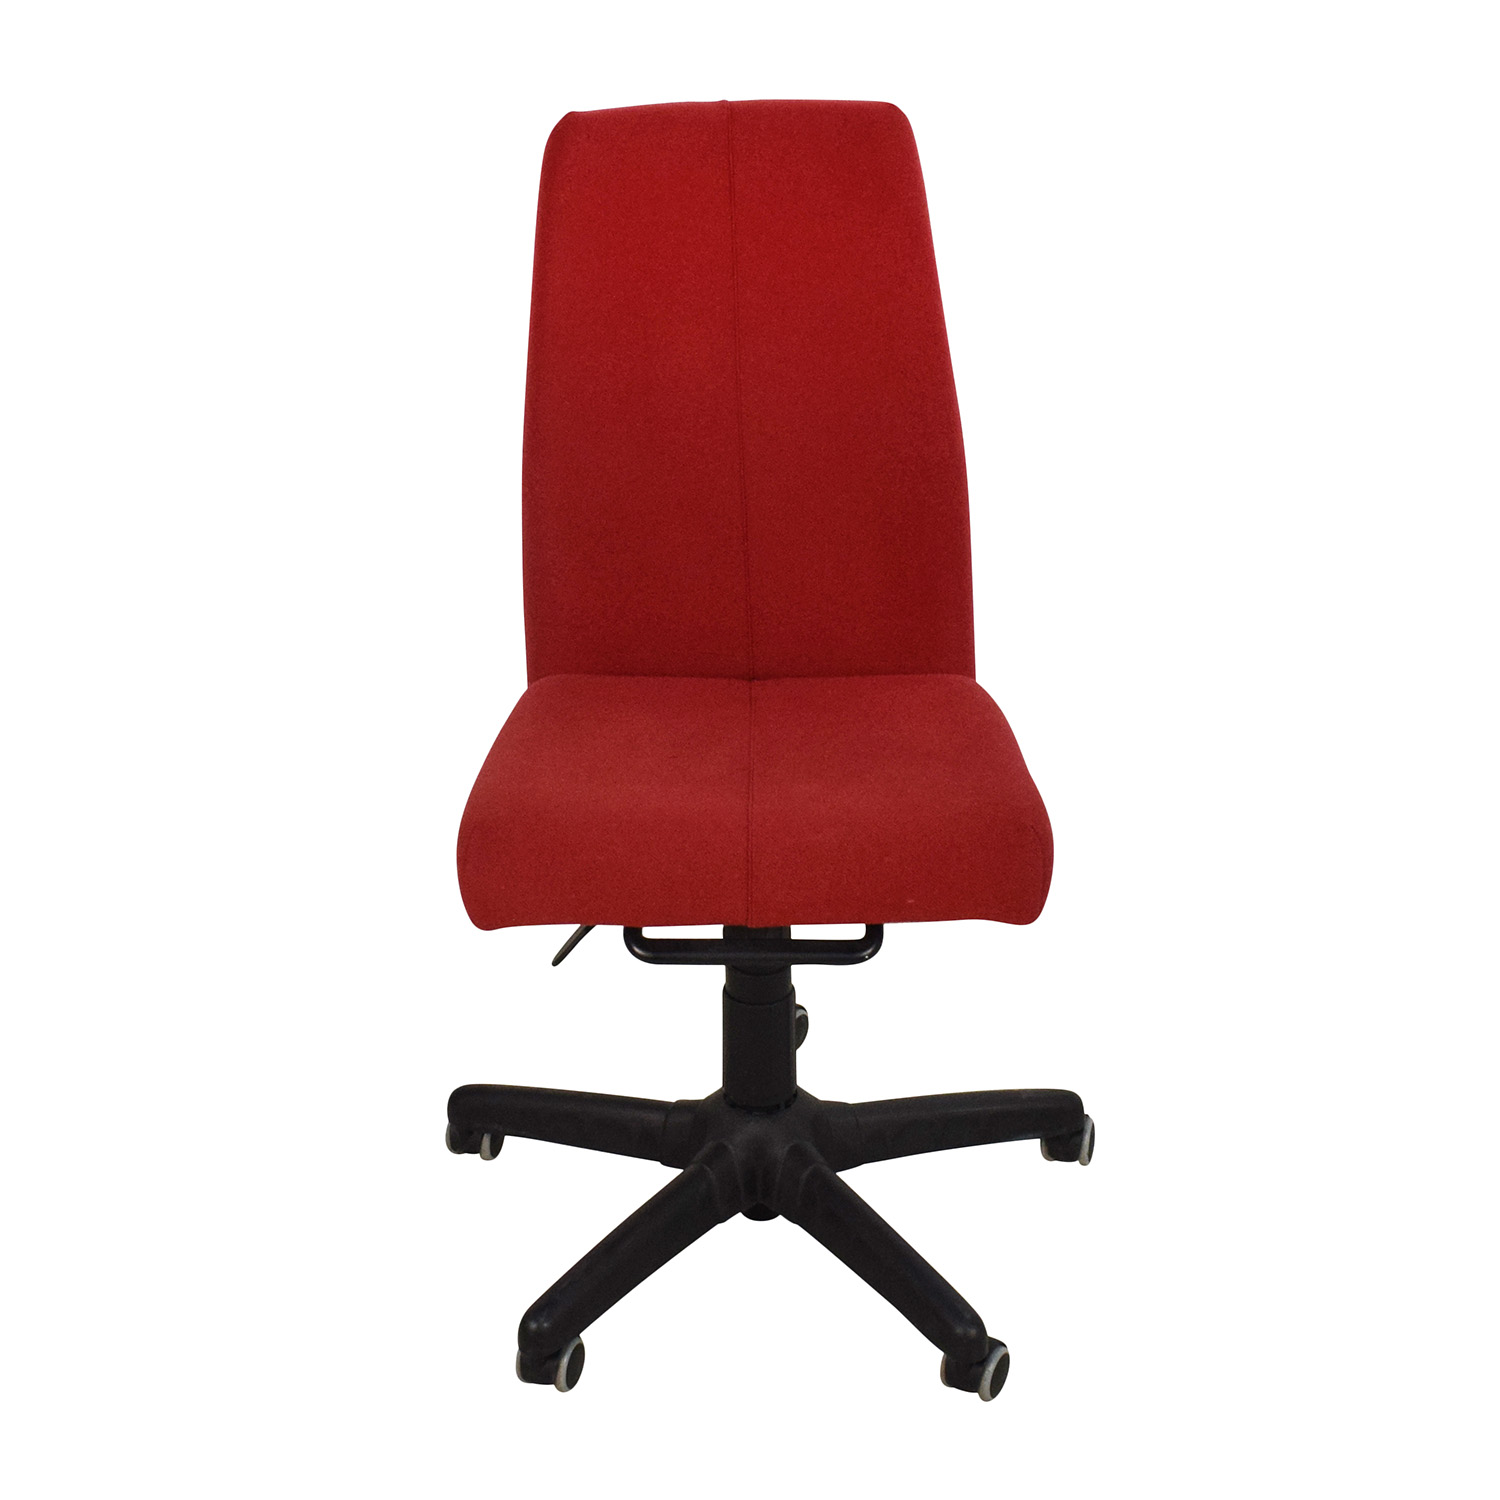 Red Armless Adjustable Home Office Chair / Chairs